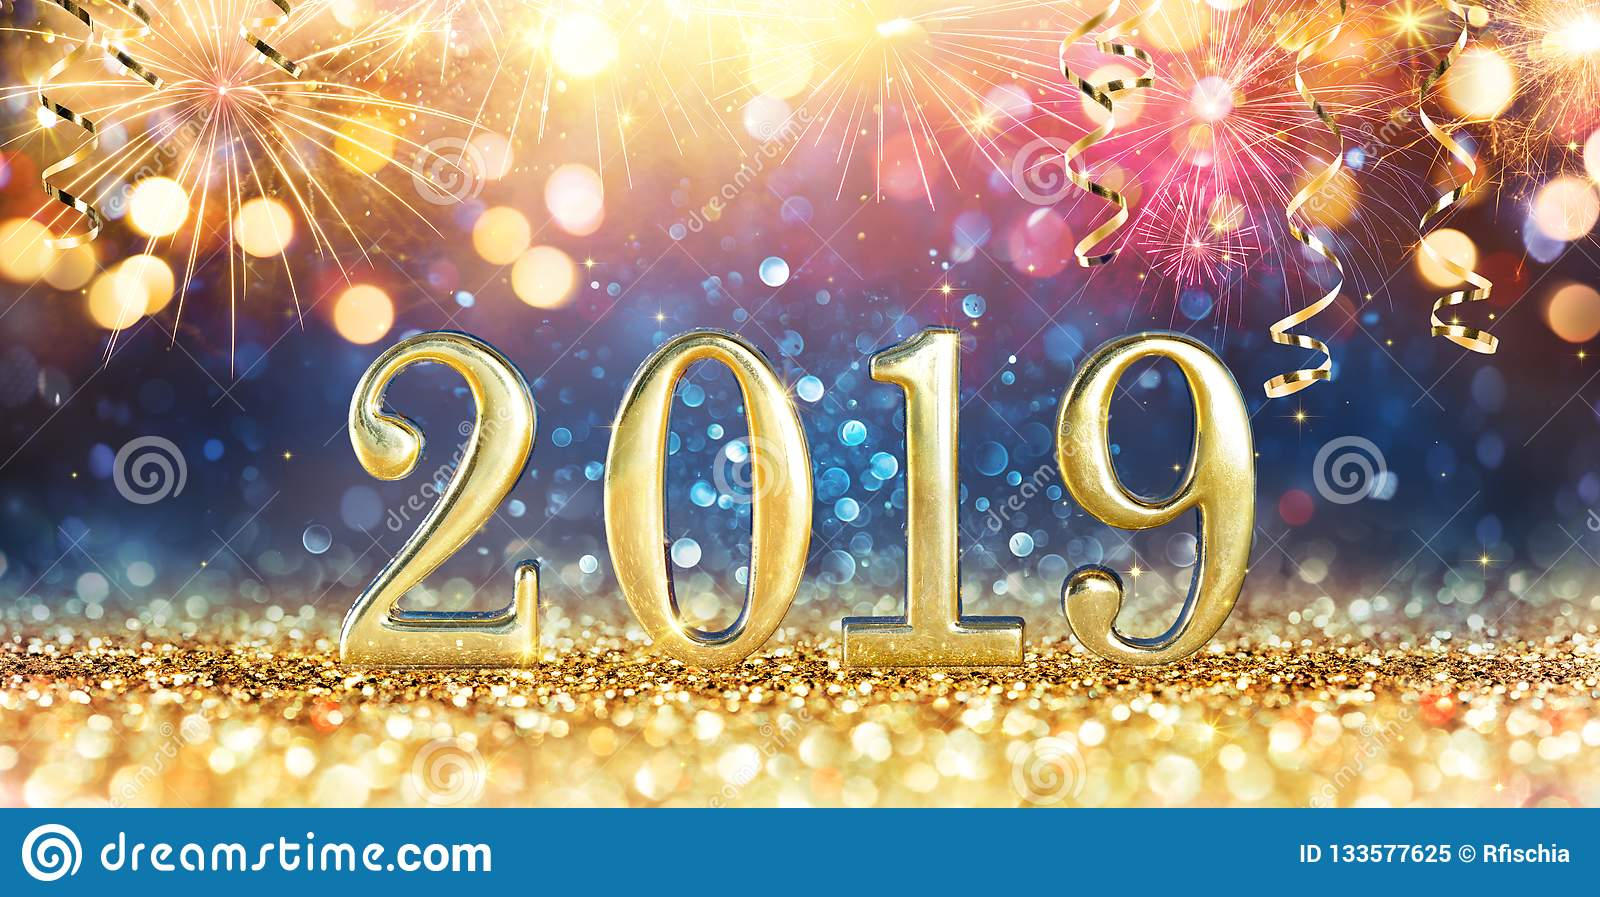 Happy New Year Images 2019 16